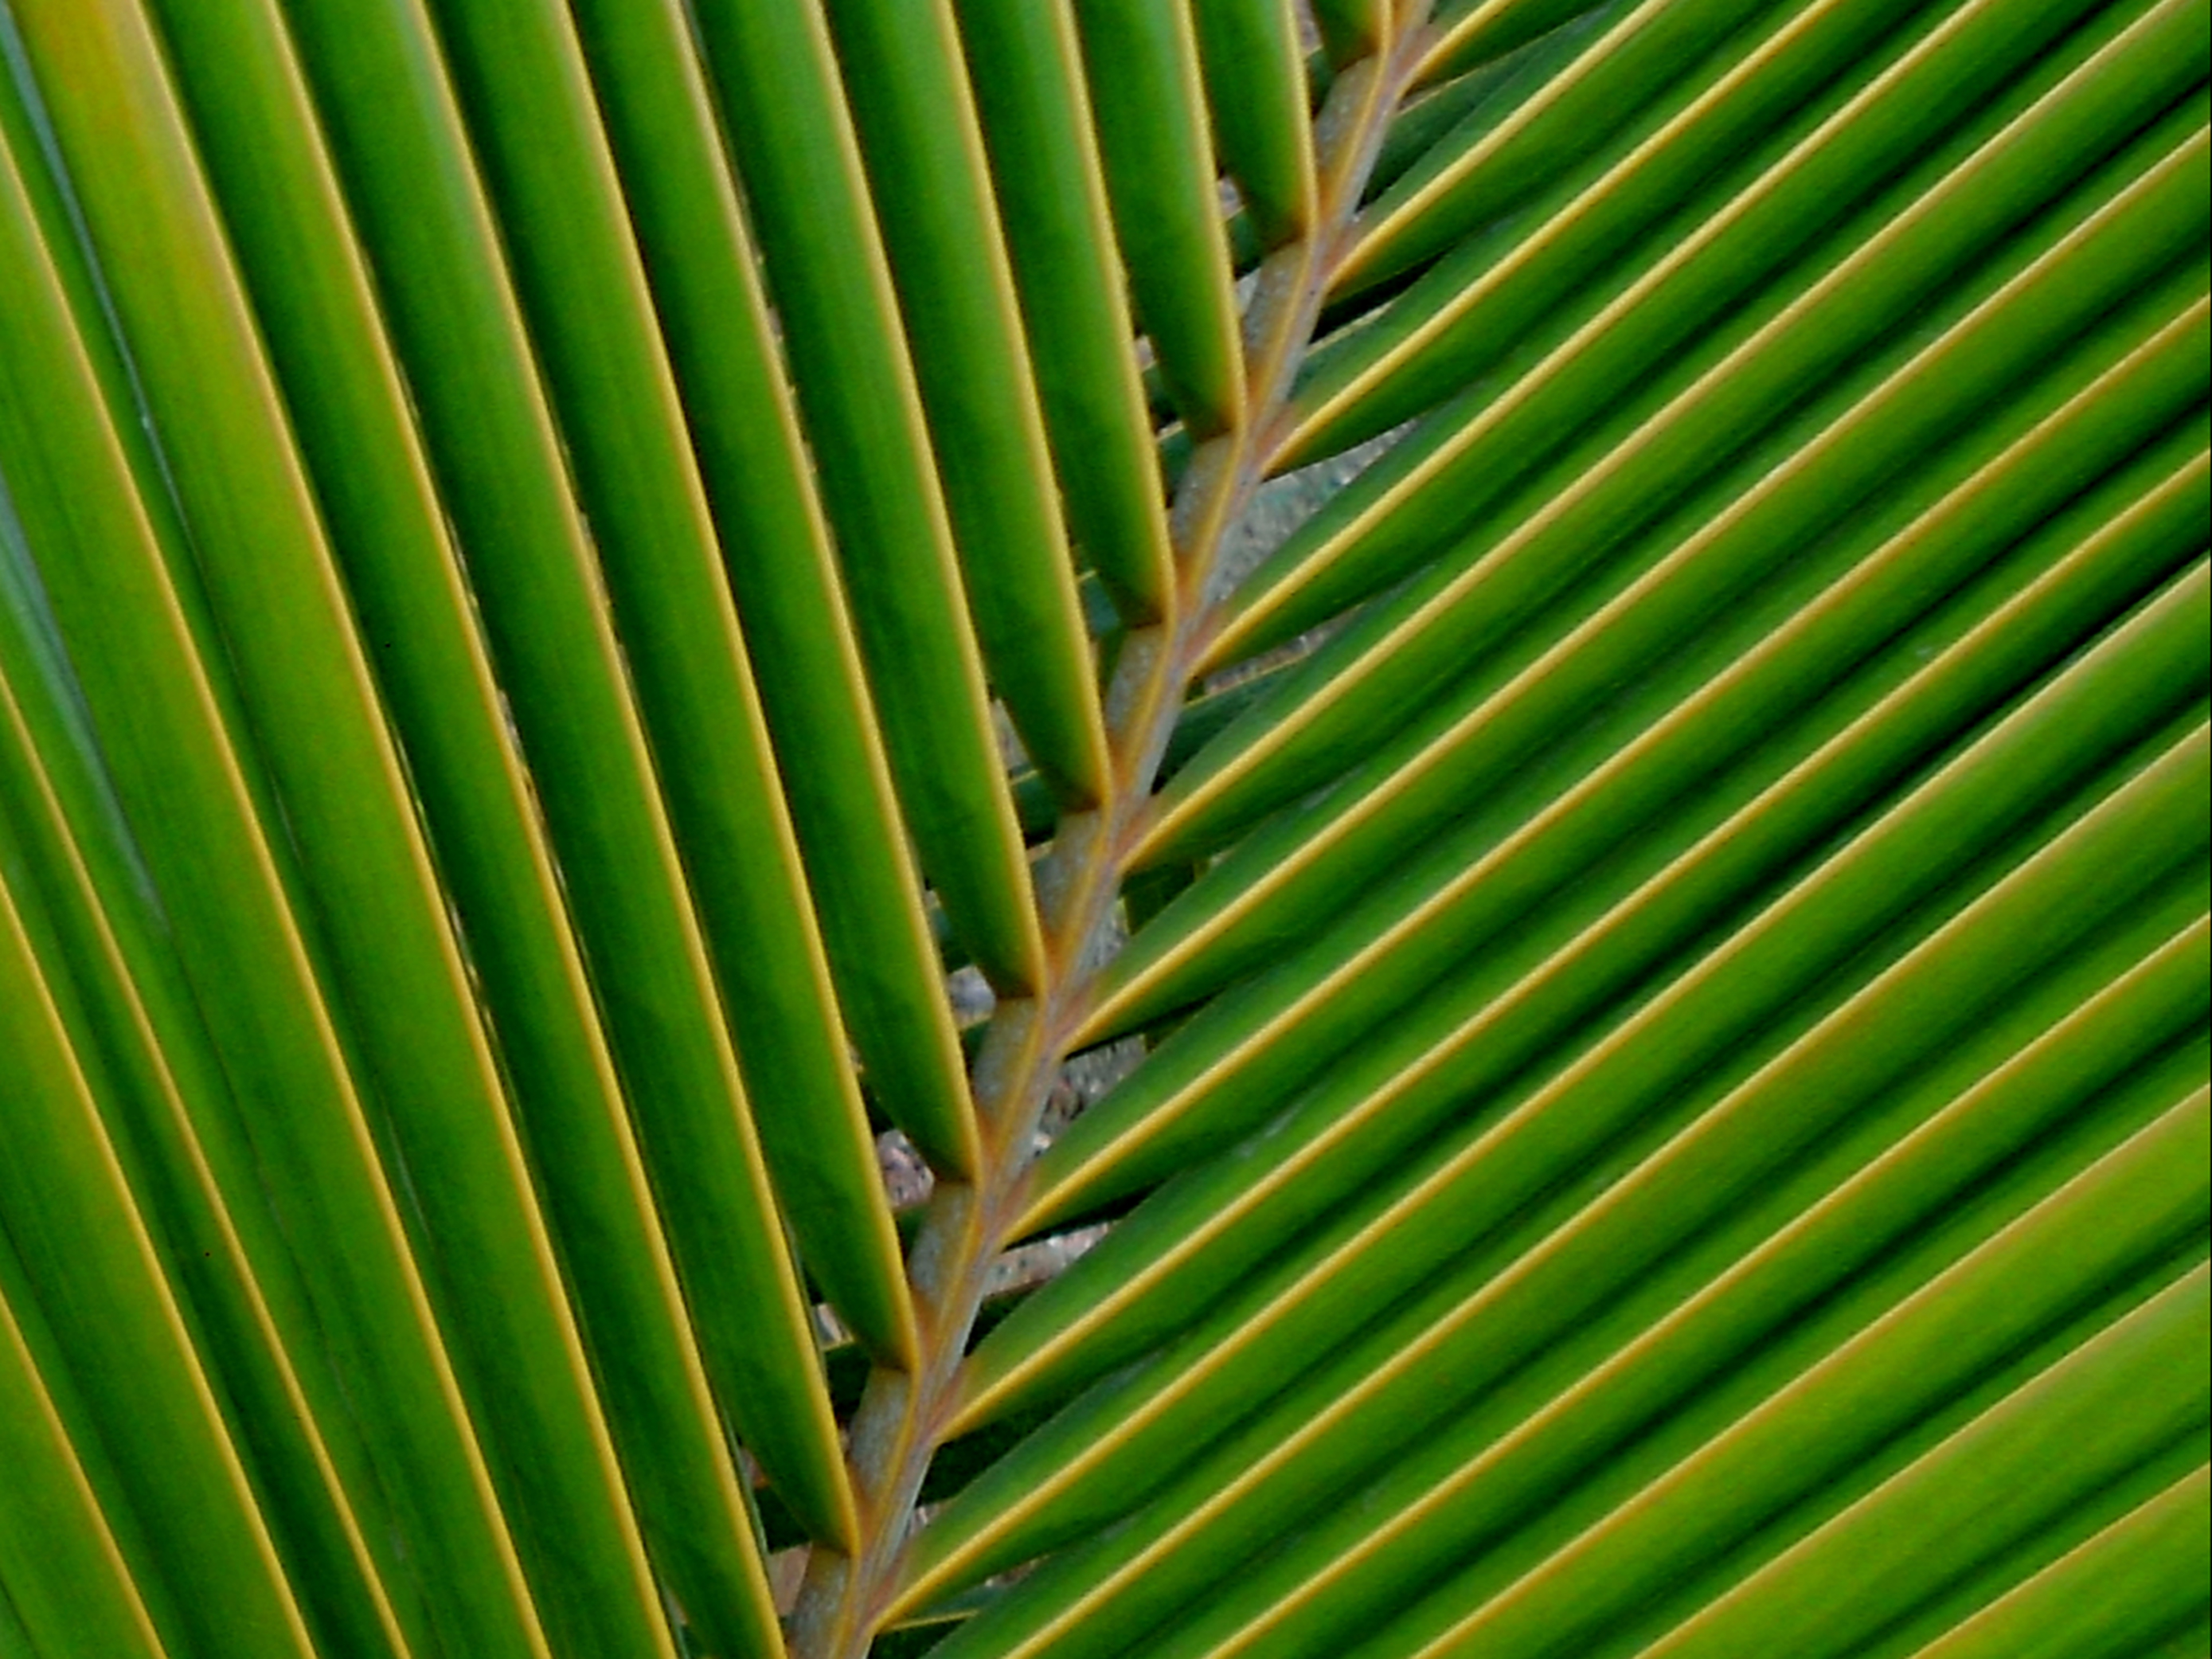 File:A coconut palm leaf at Madhurawada.JPG